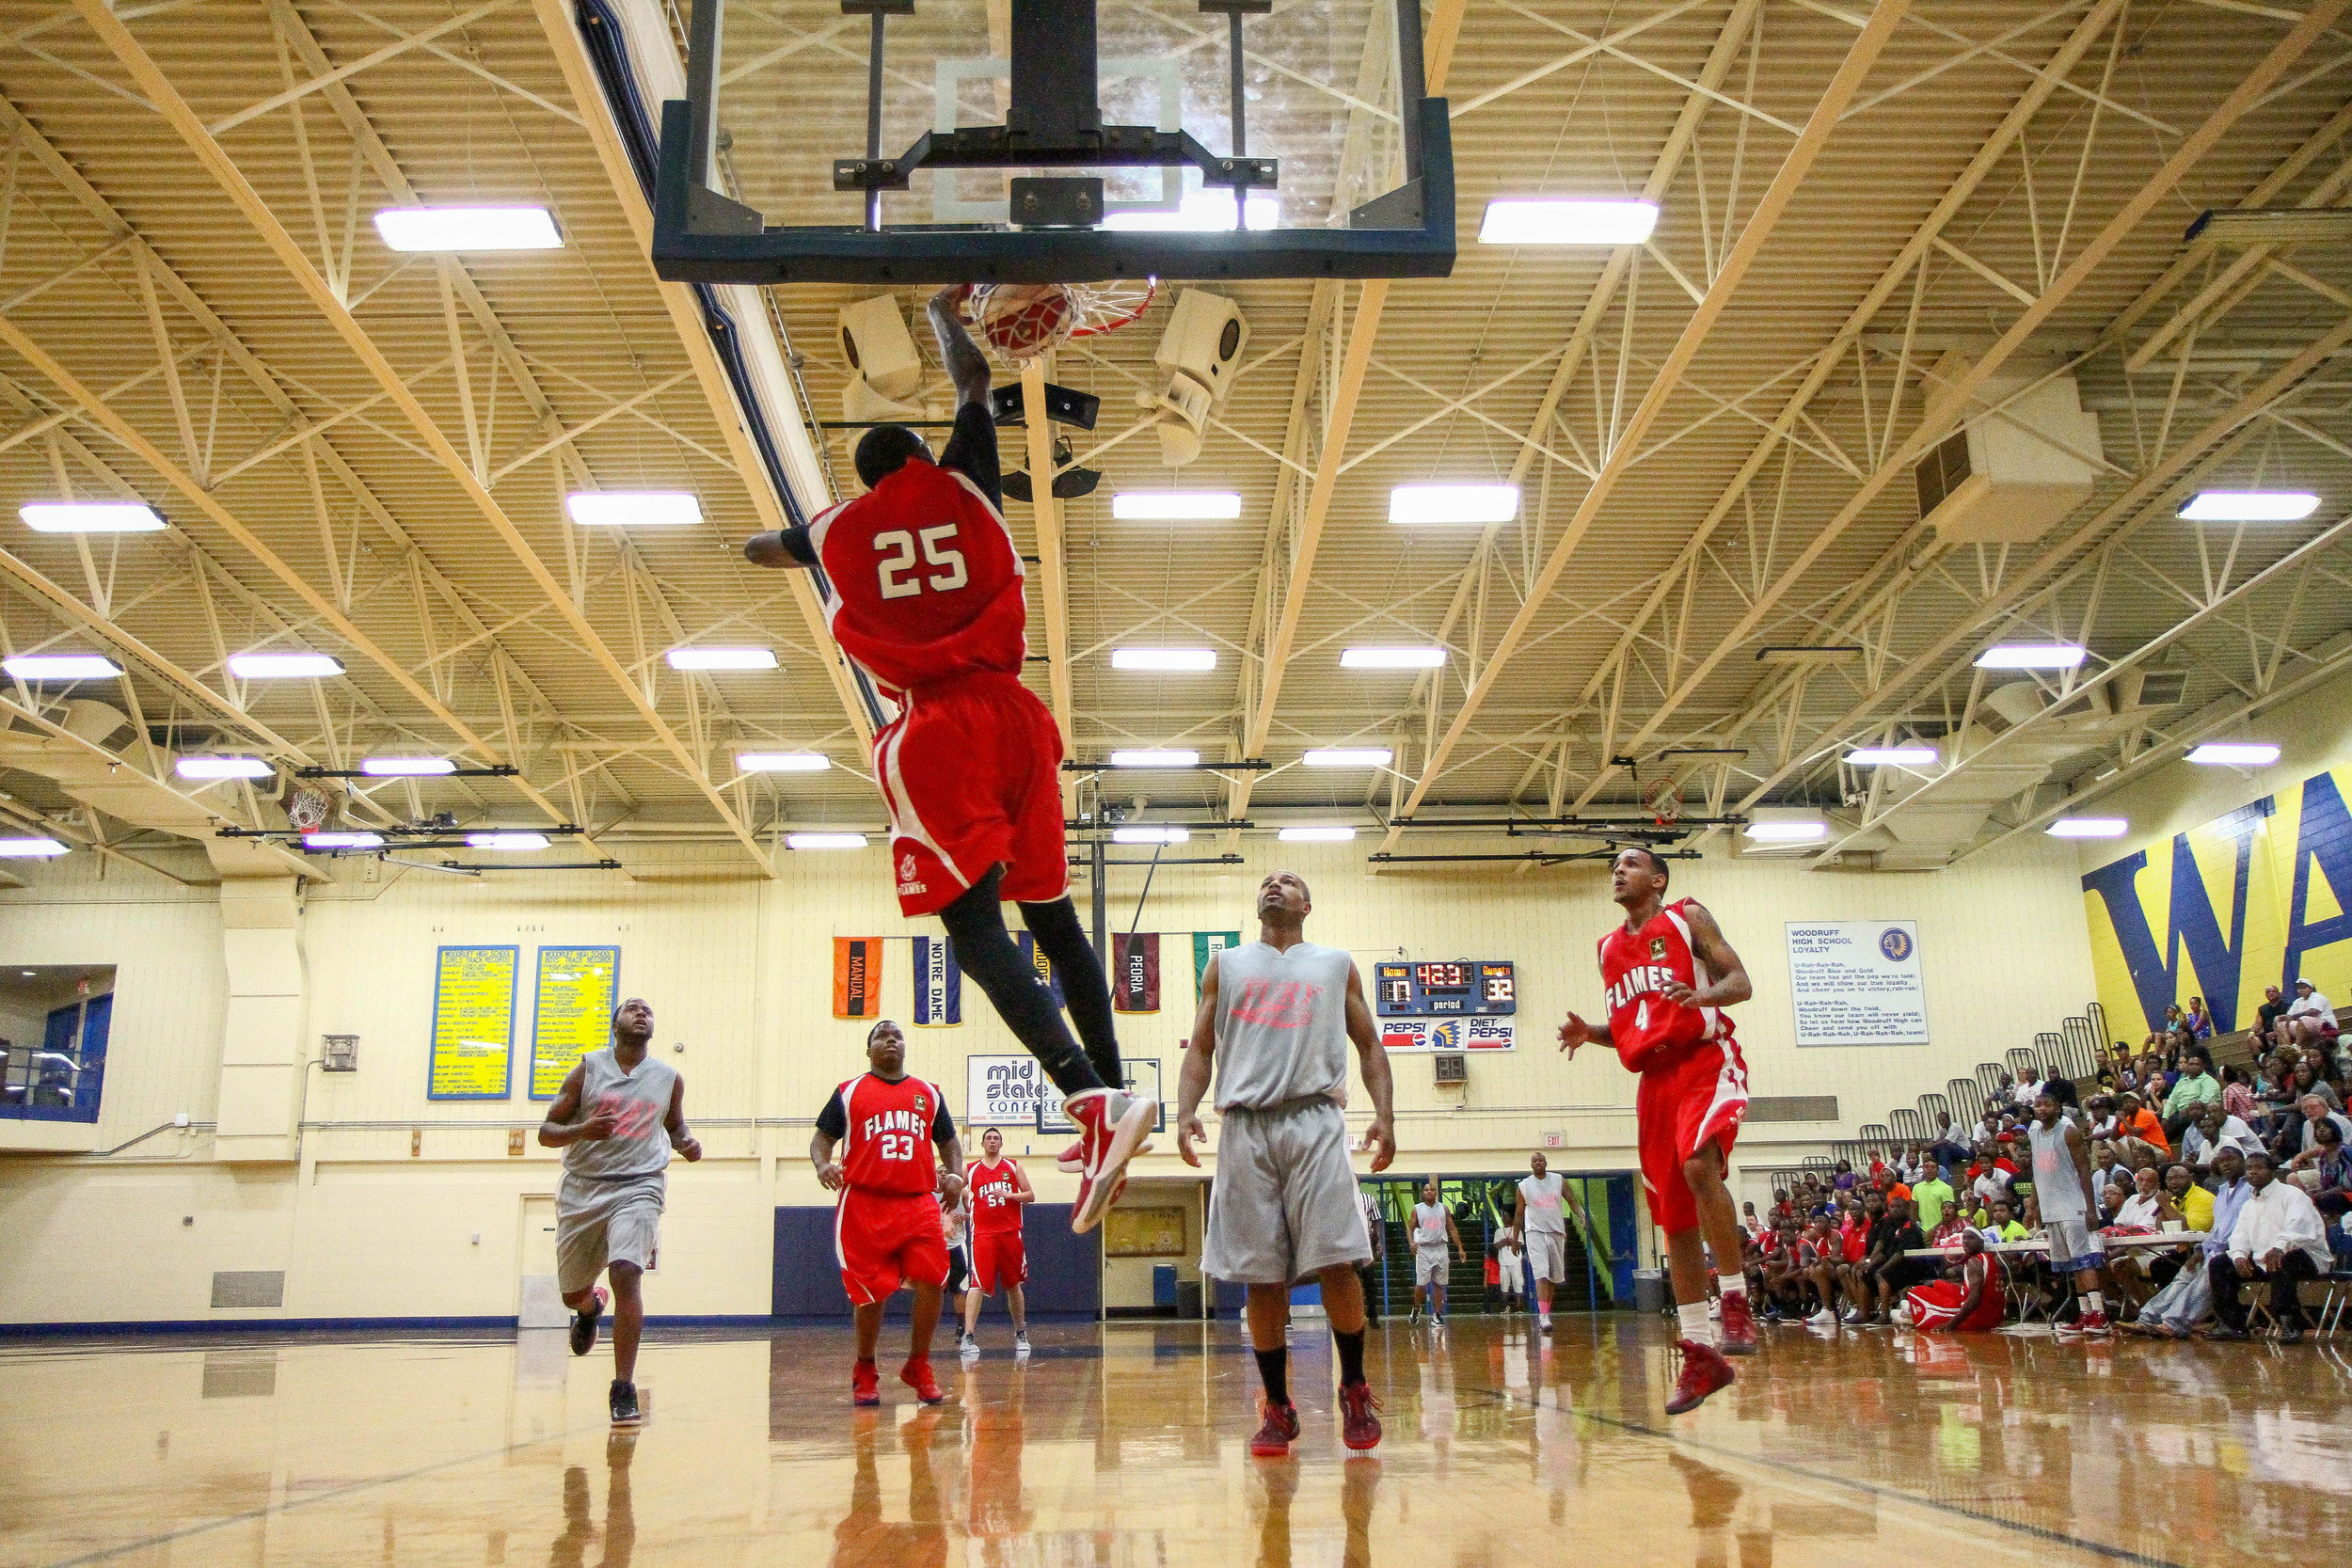 Midwest Flames player number 25 dunks during an exhibition game between the Midwest Flames vs Chicago Fury